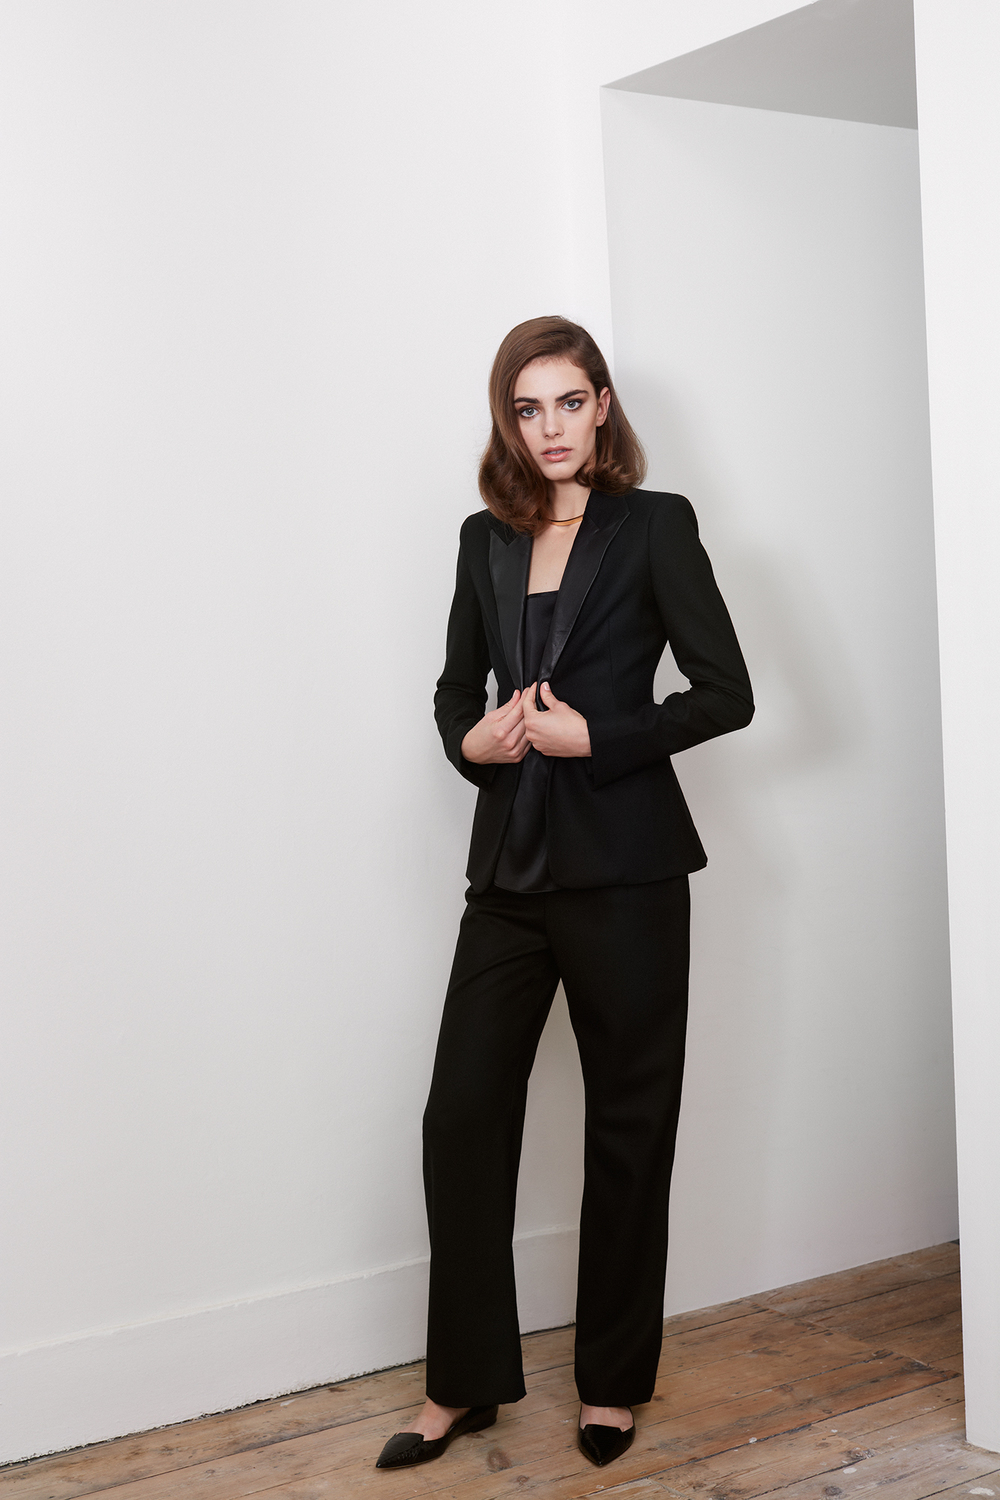 Lovell jacket, Lovell trousers, Ellworth camisole